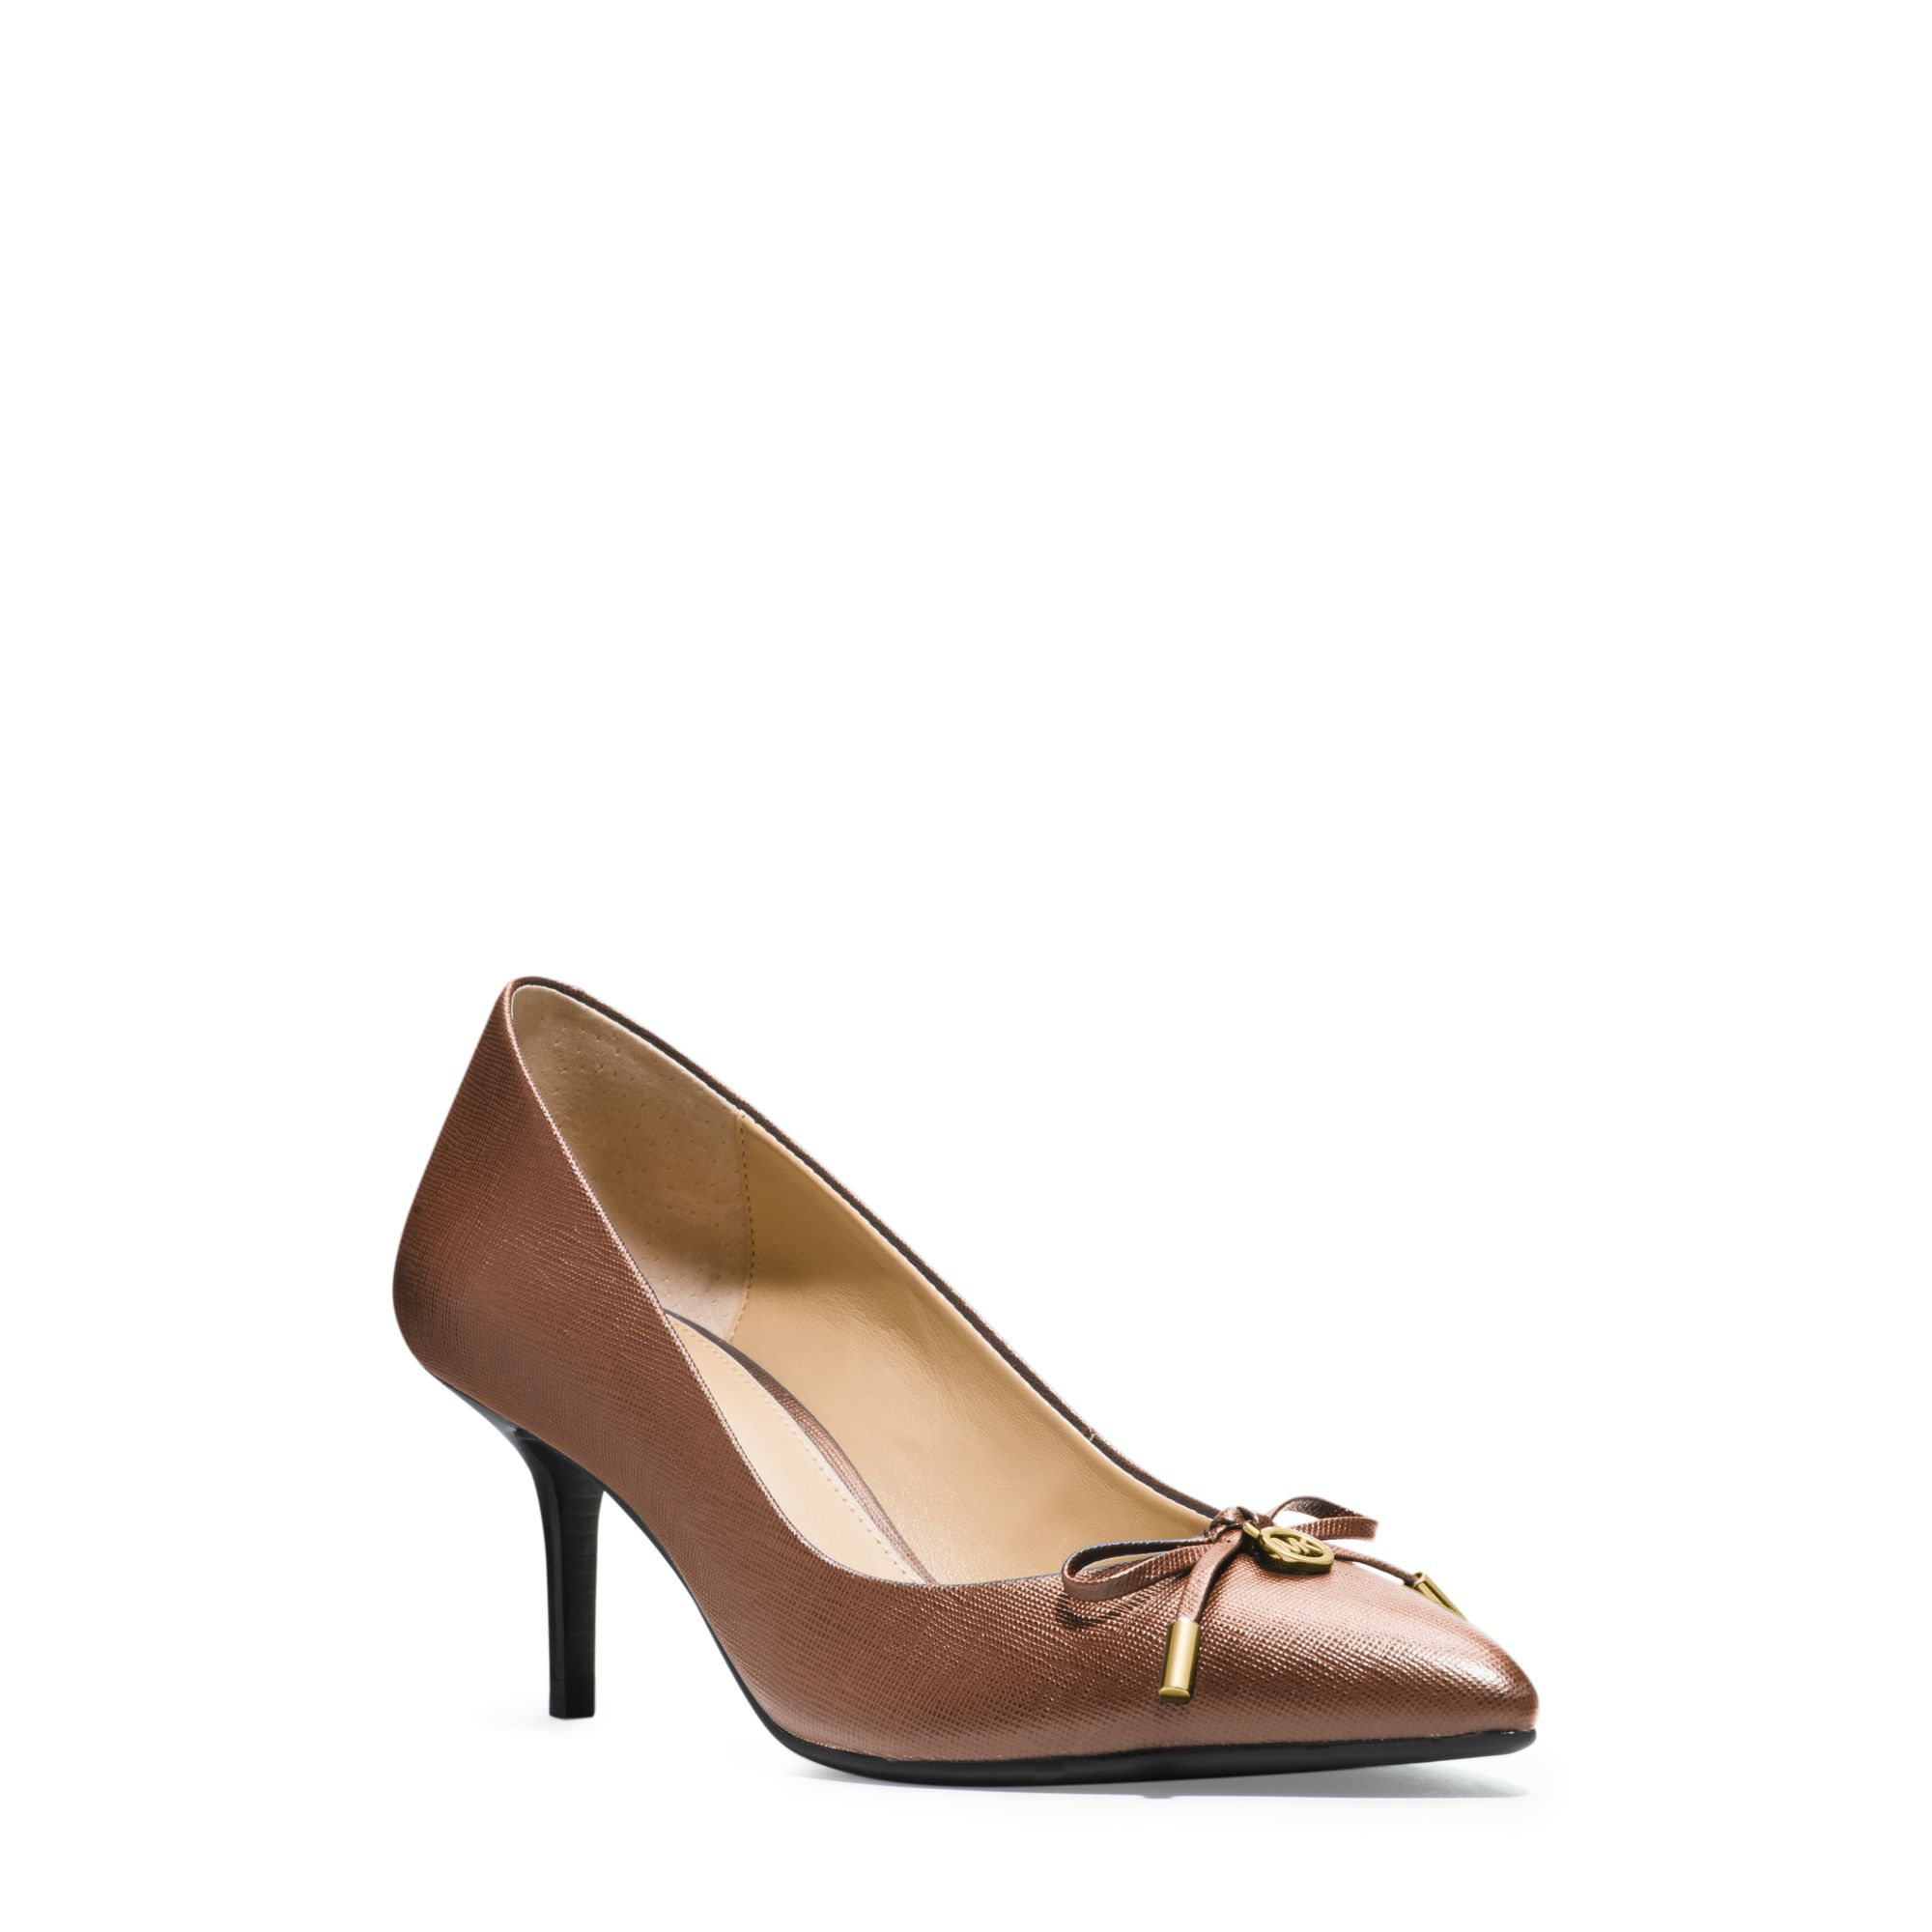 michael kors nancy saffiano leather pump in brown lyst. Black Bedroom Furniture Sets. Home Design Ideas